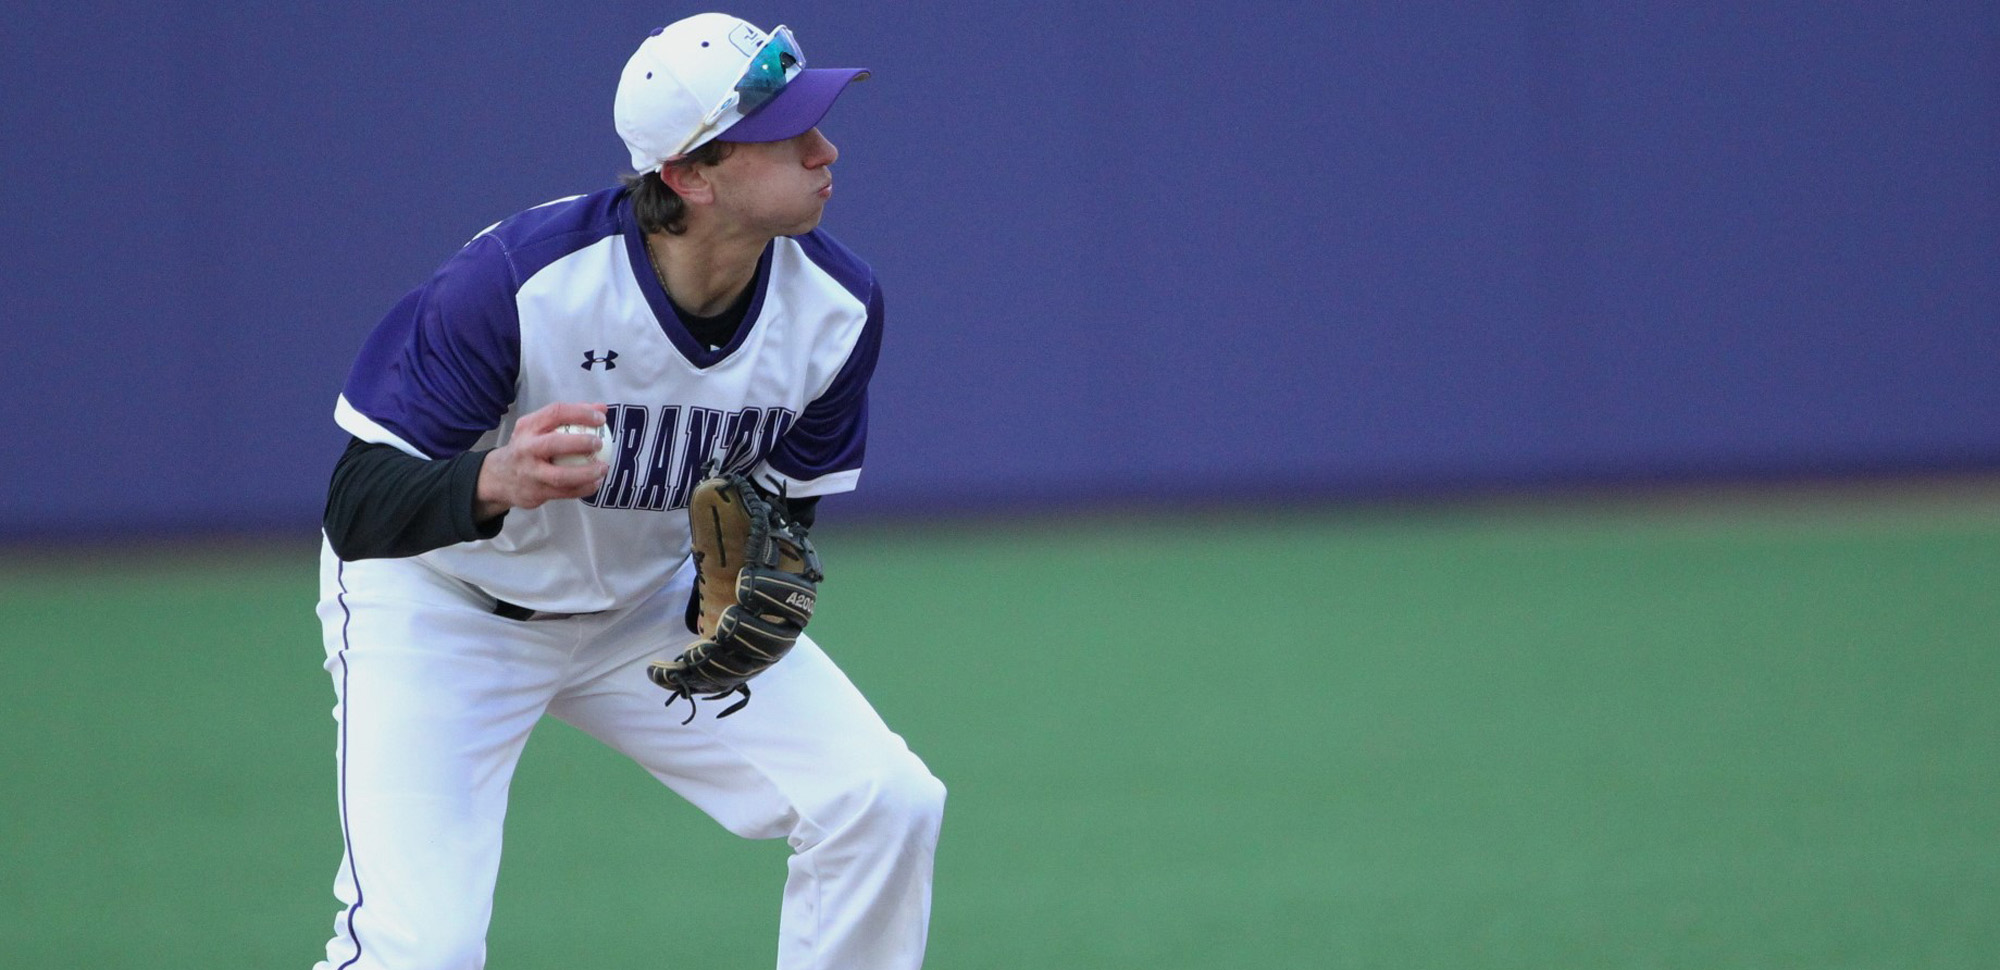 Sophomore Brandon Peters tripled, doubled twice, scored three runs and drove in two on Monday night.